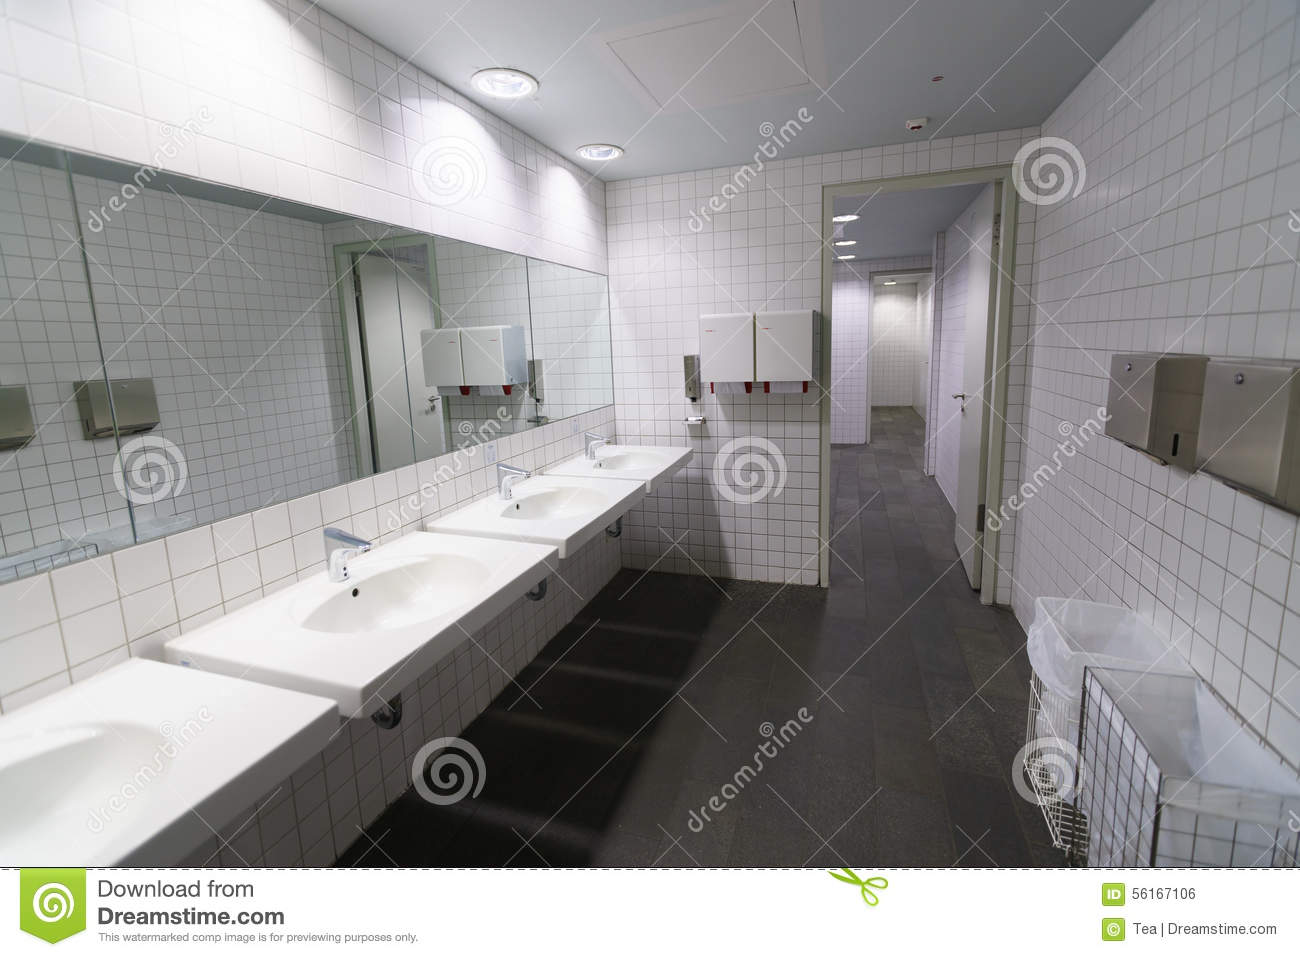 Toilet in airport editorial photo. Image of interior - 56167106